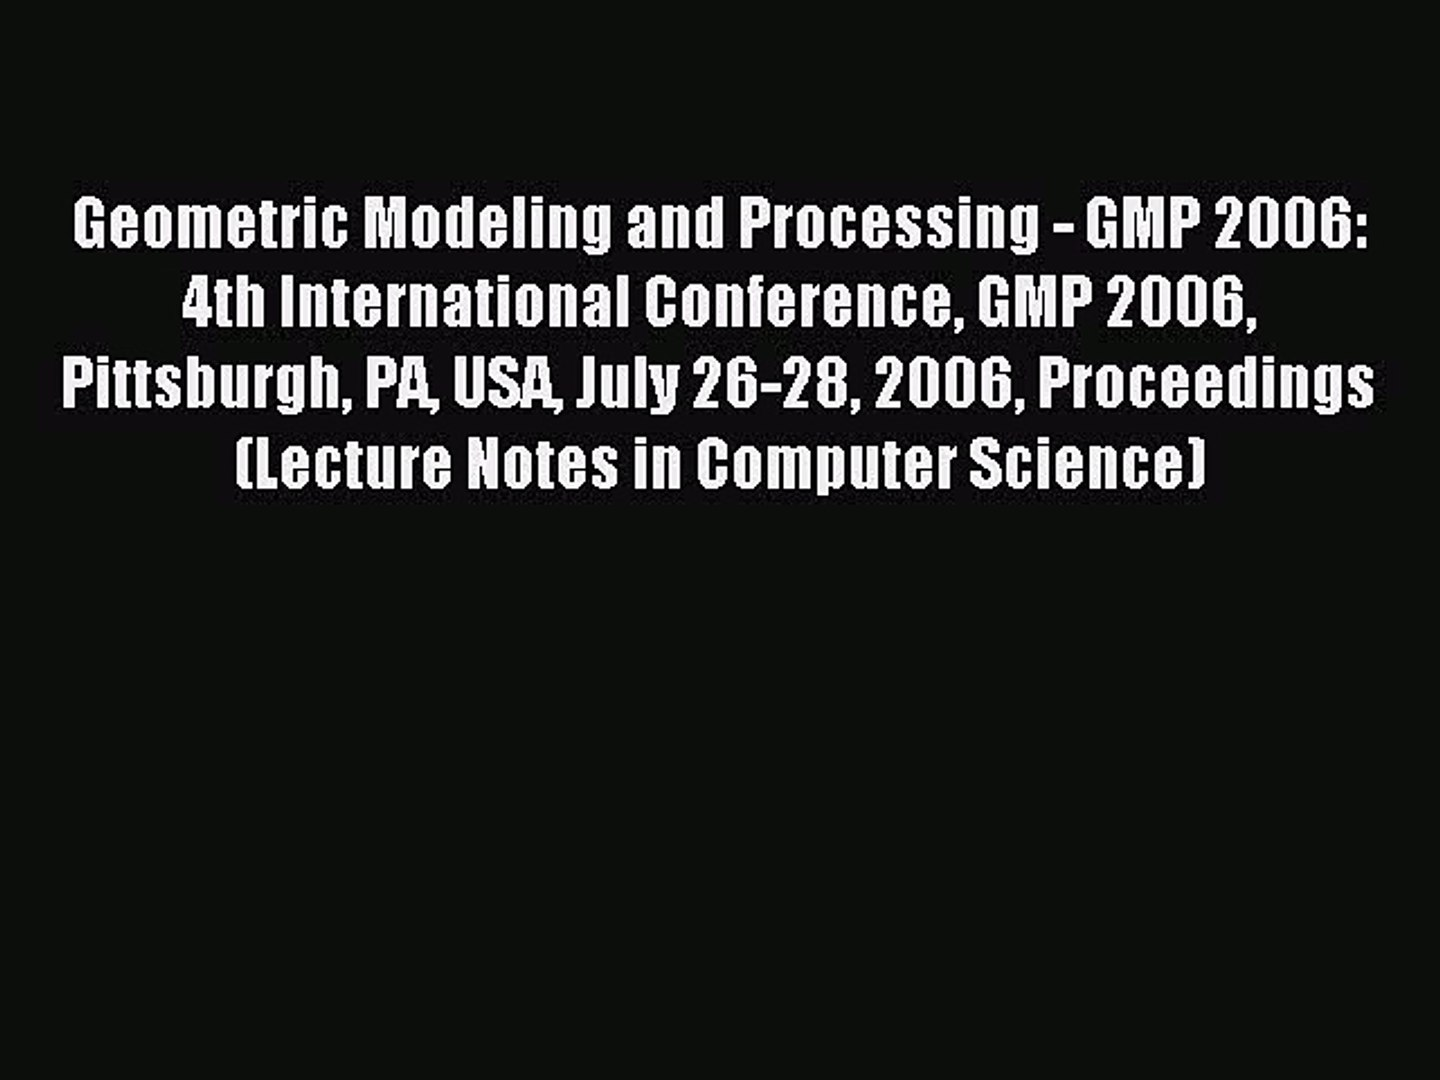 Read Geometric Modeling and Processing - GMP 2006: 4th International Conference GMP 2006 Pittsburgh